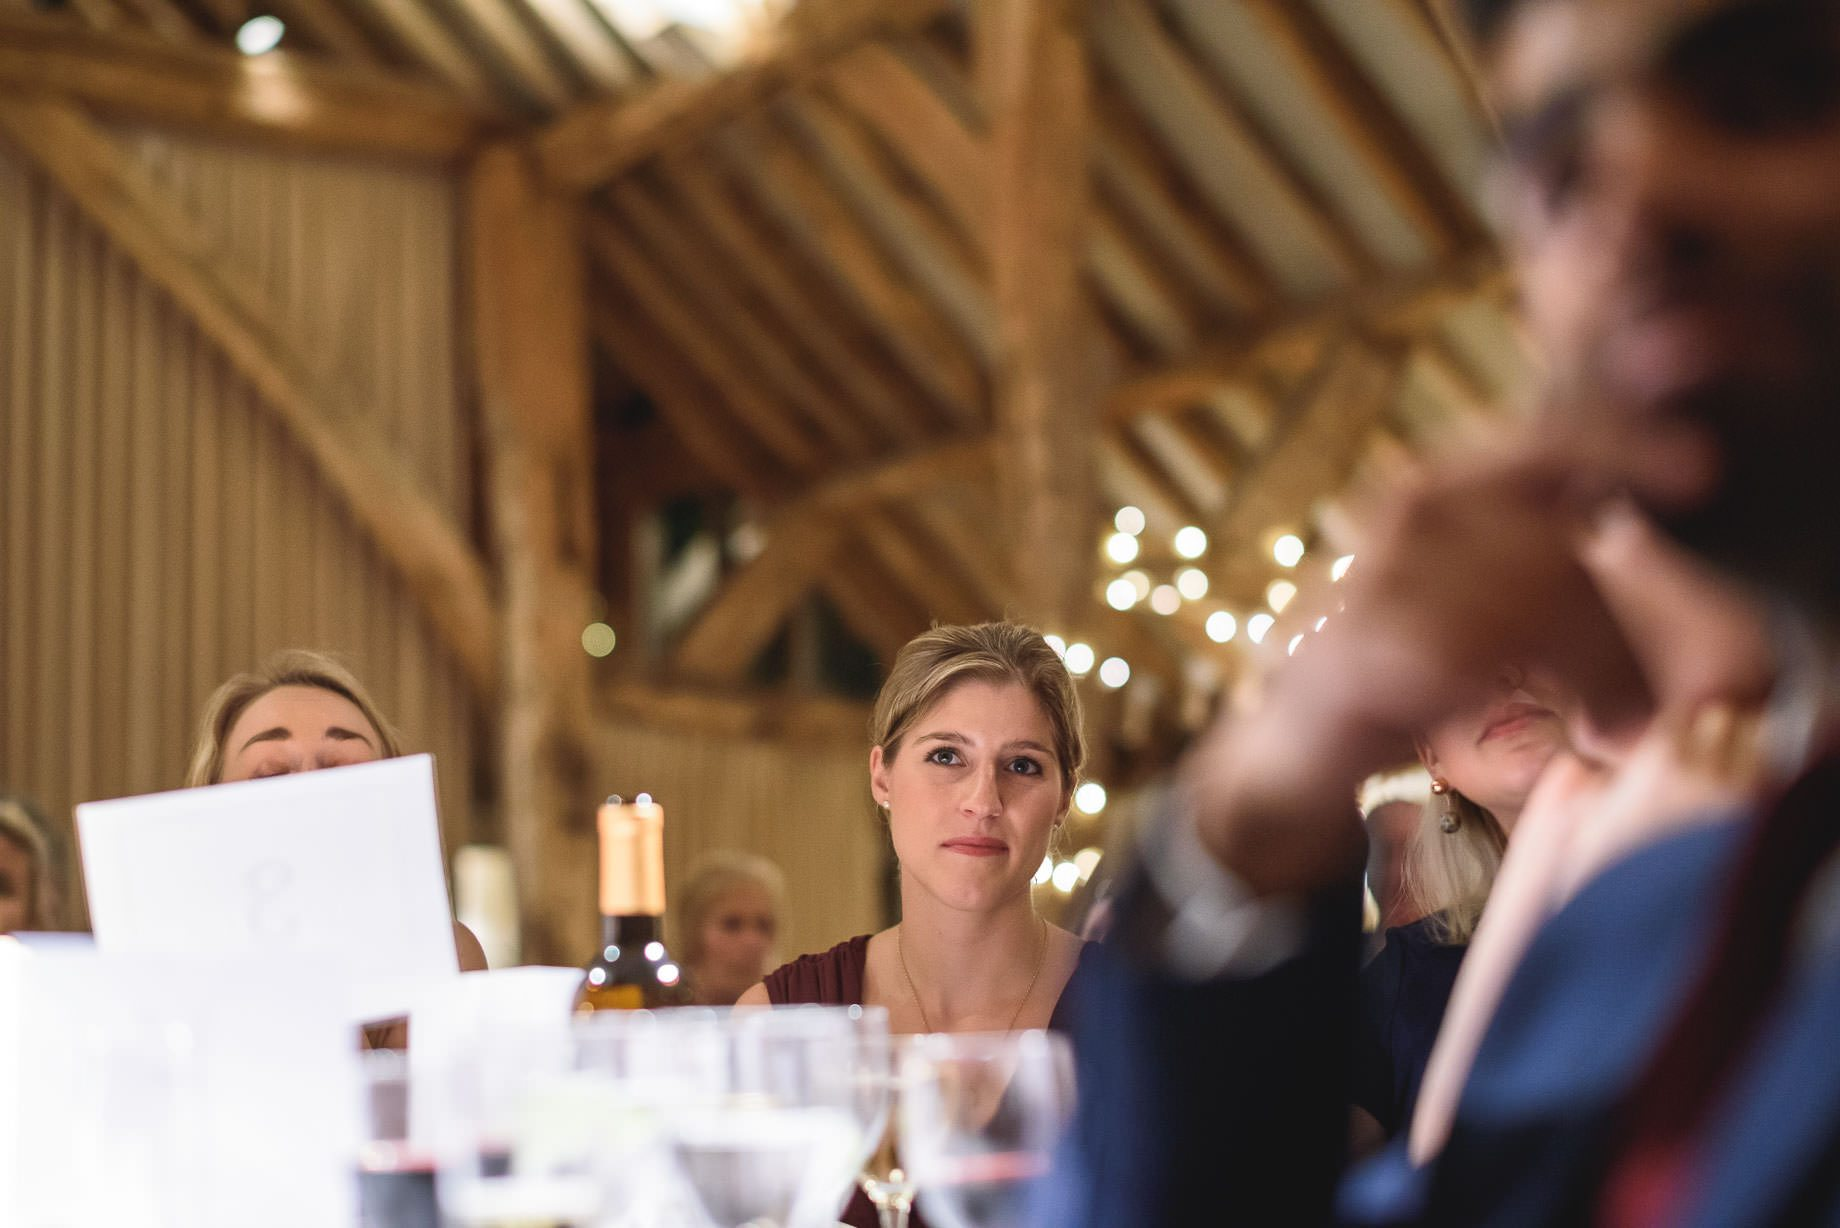 bury-court-barn-wedding-photography-guy-collier-photography-nadia-tom-151-of-184